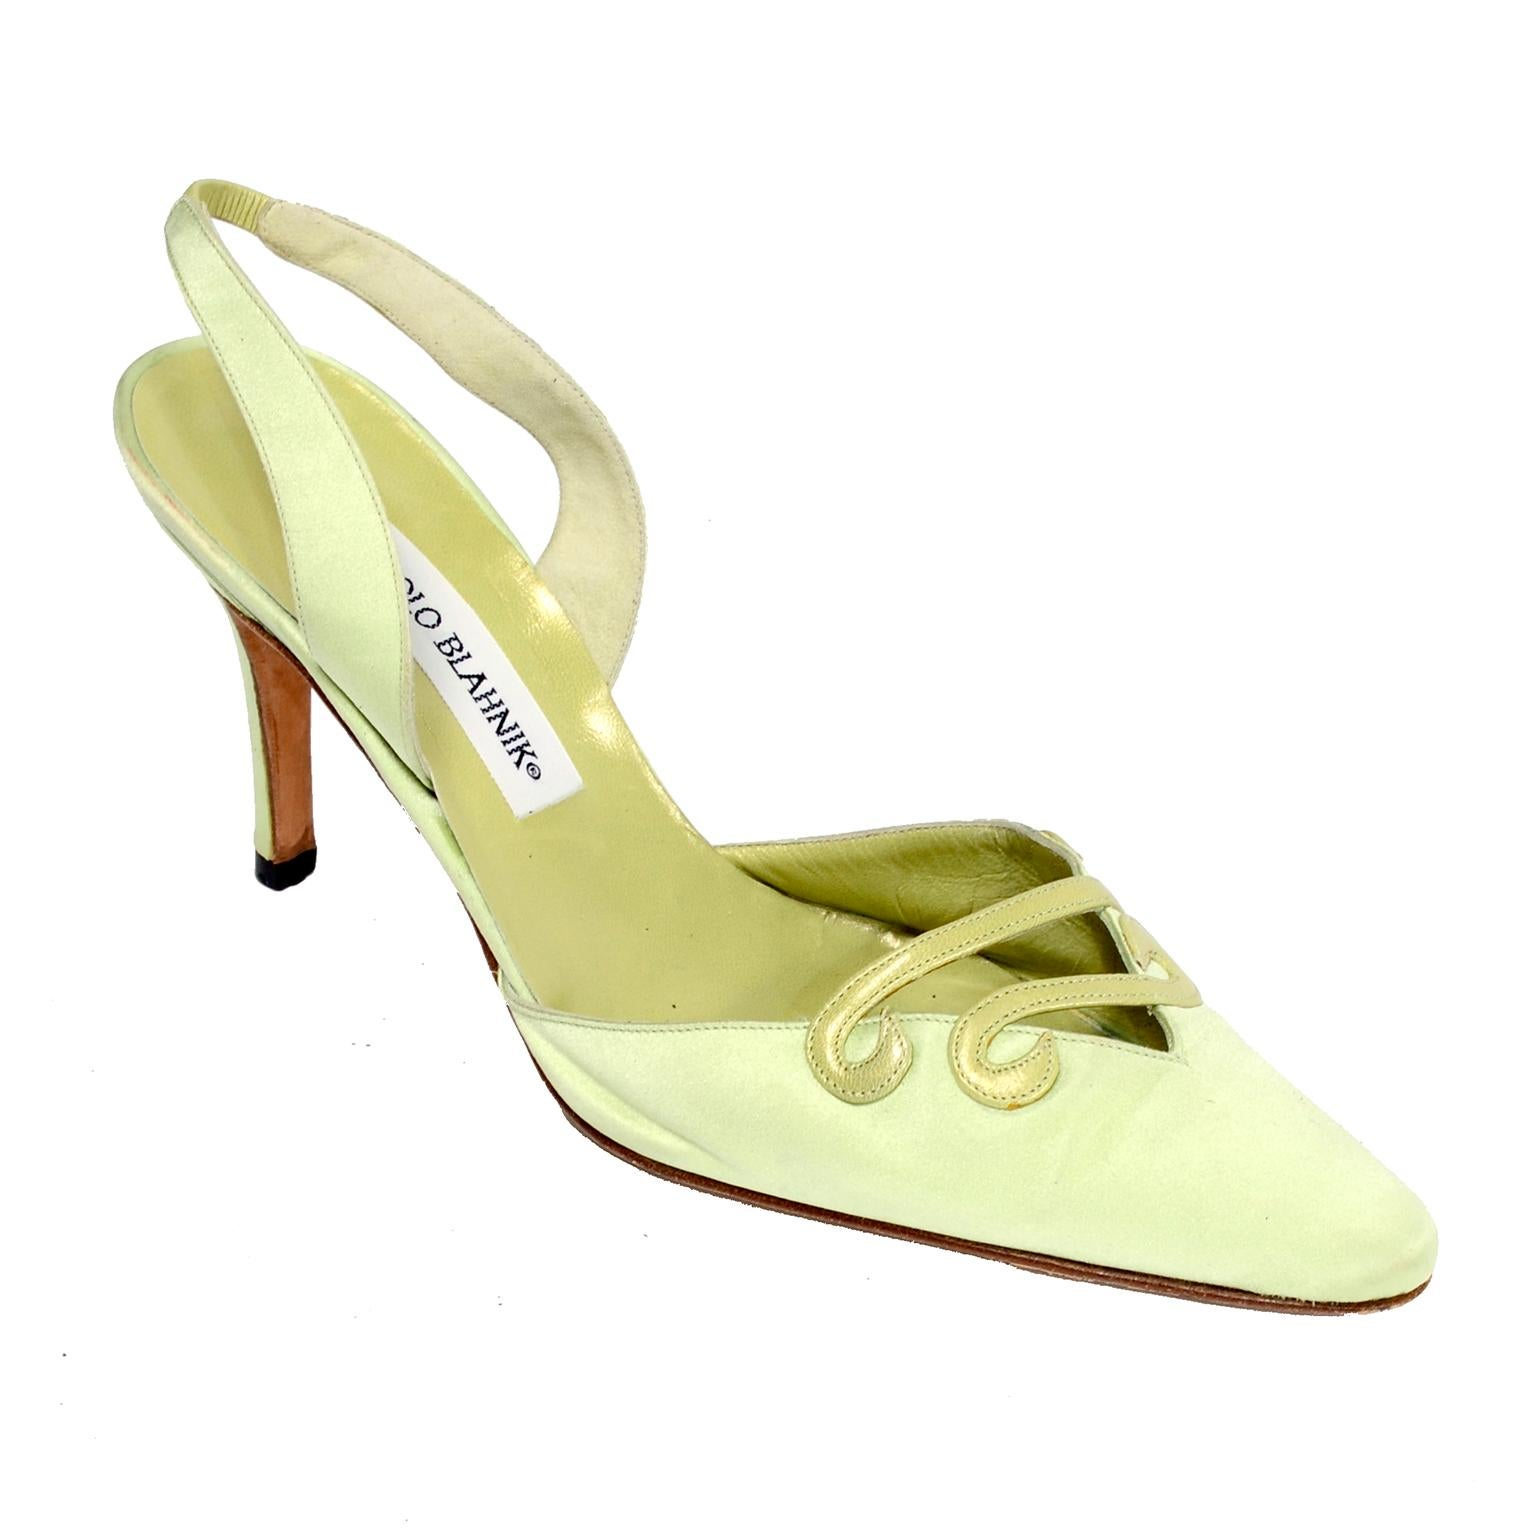 f9d8a4a6e75 Vintage Manolo Blahnik Shoes - 79 For Sale at 1stdibs